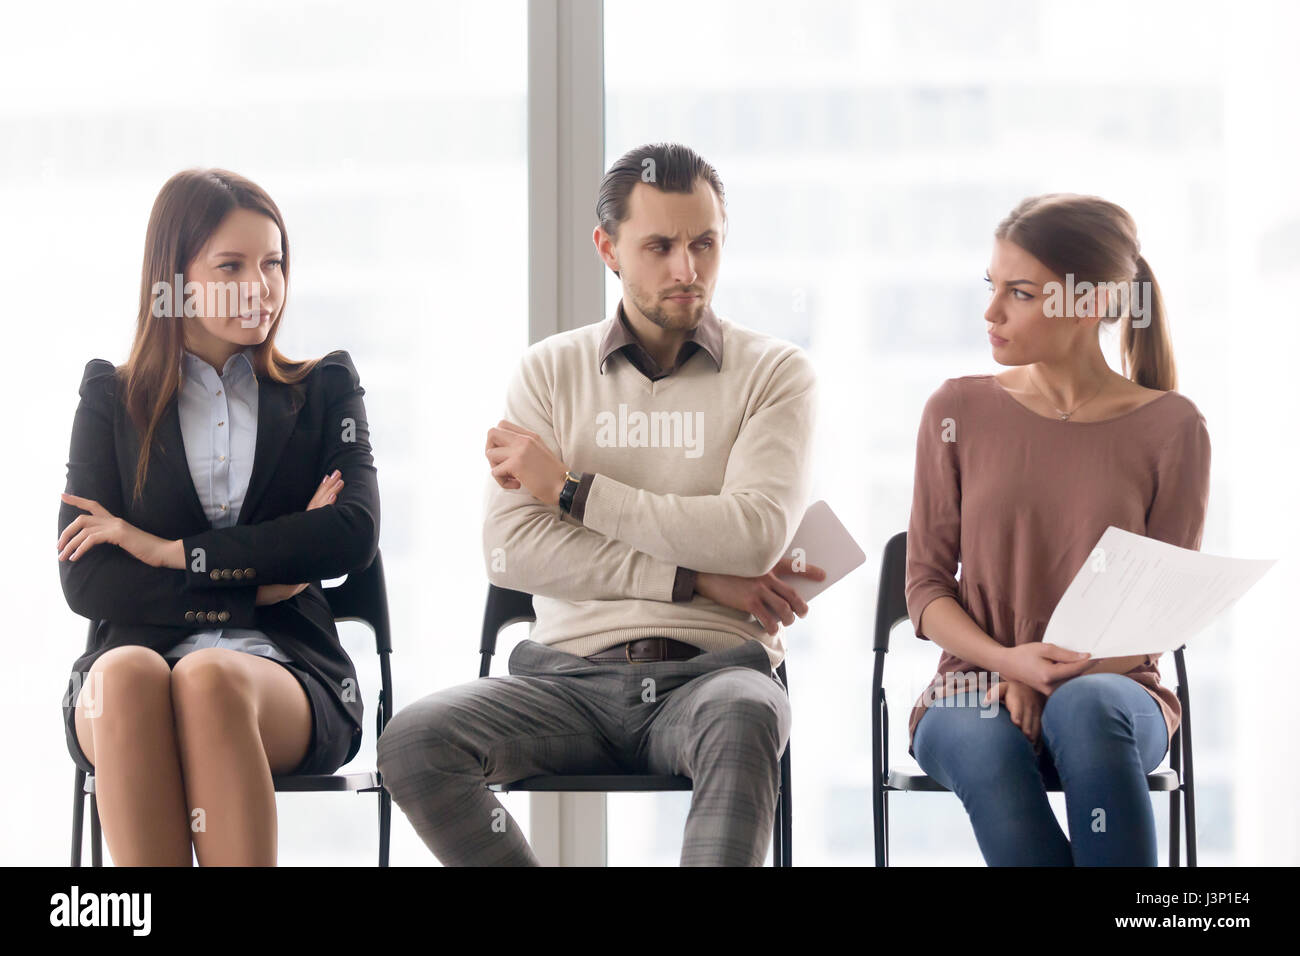 Rivalry and competition between businesspeople, applicants waiti - Stock Image